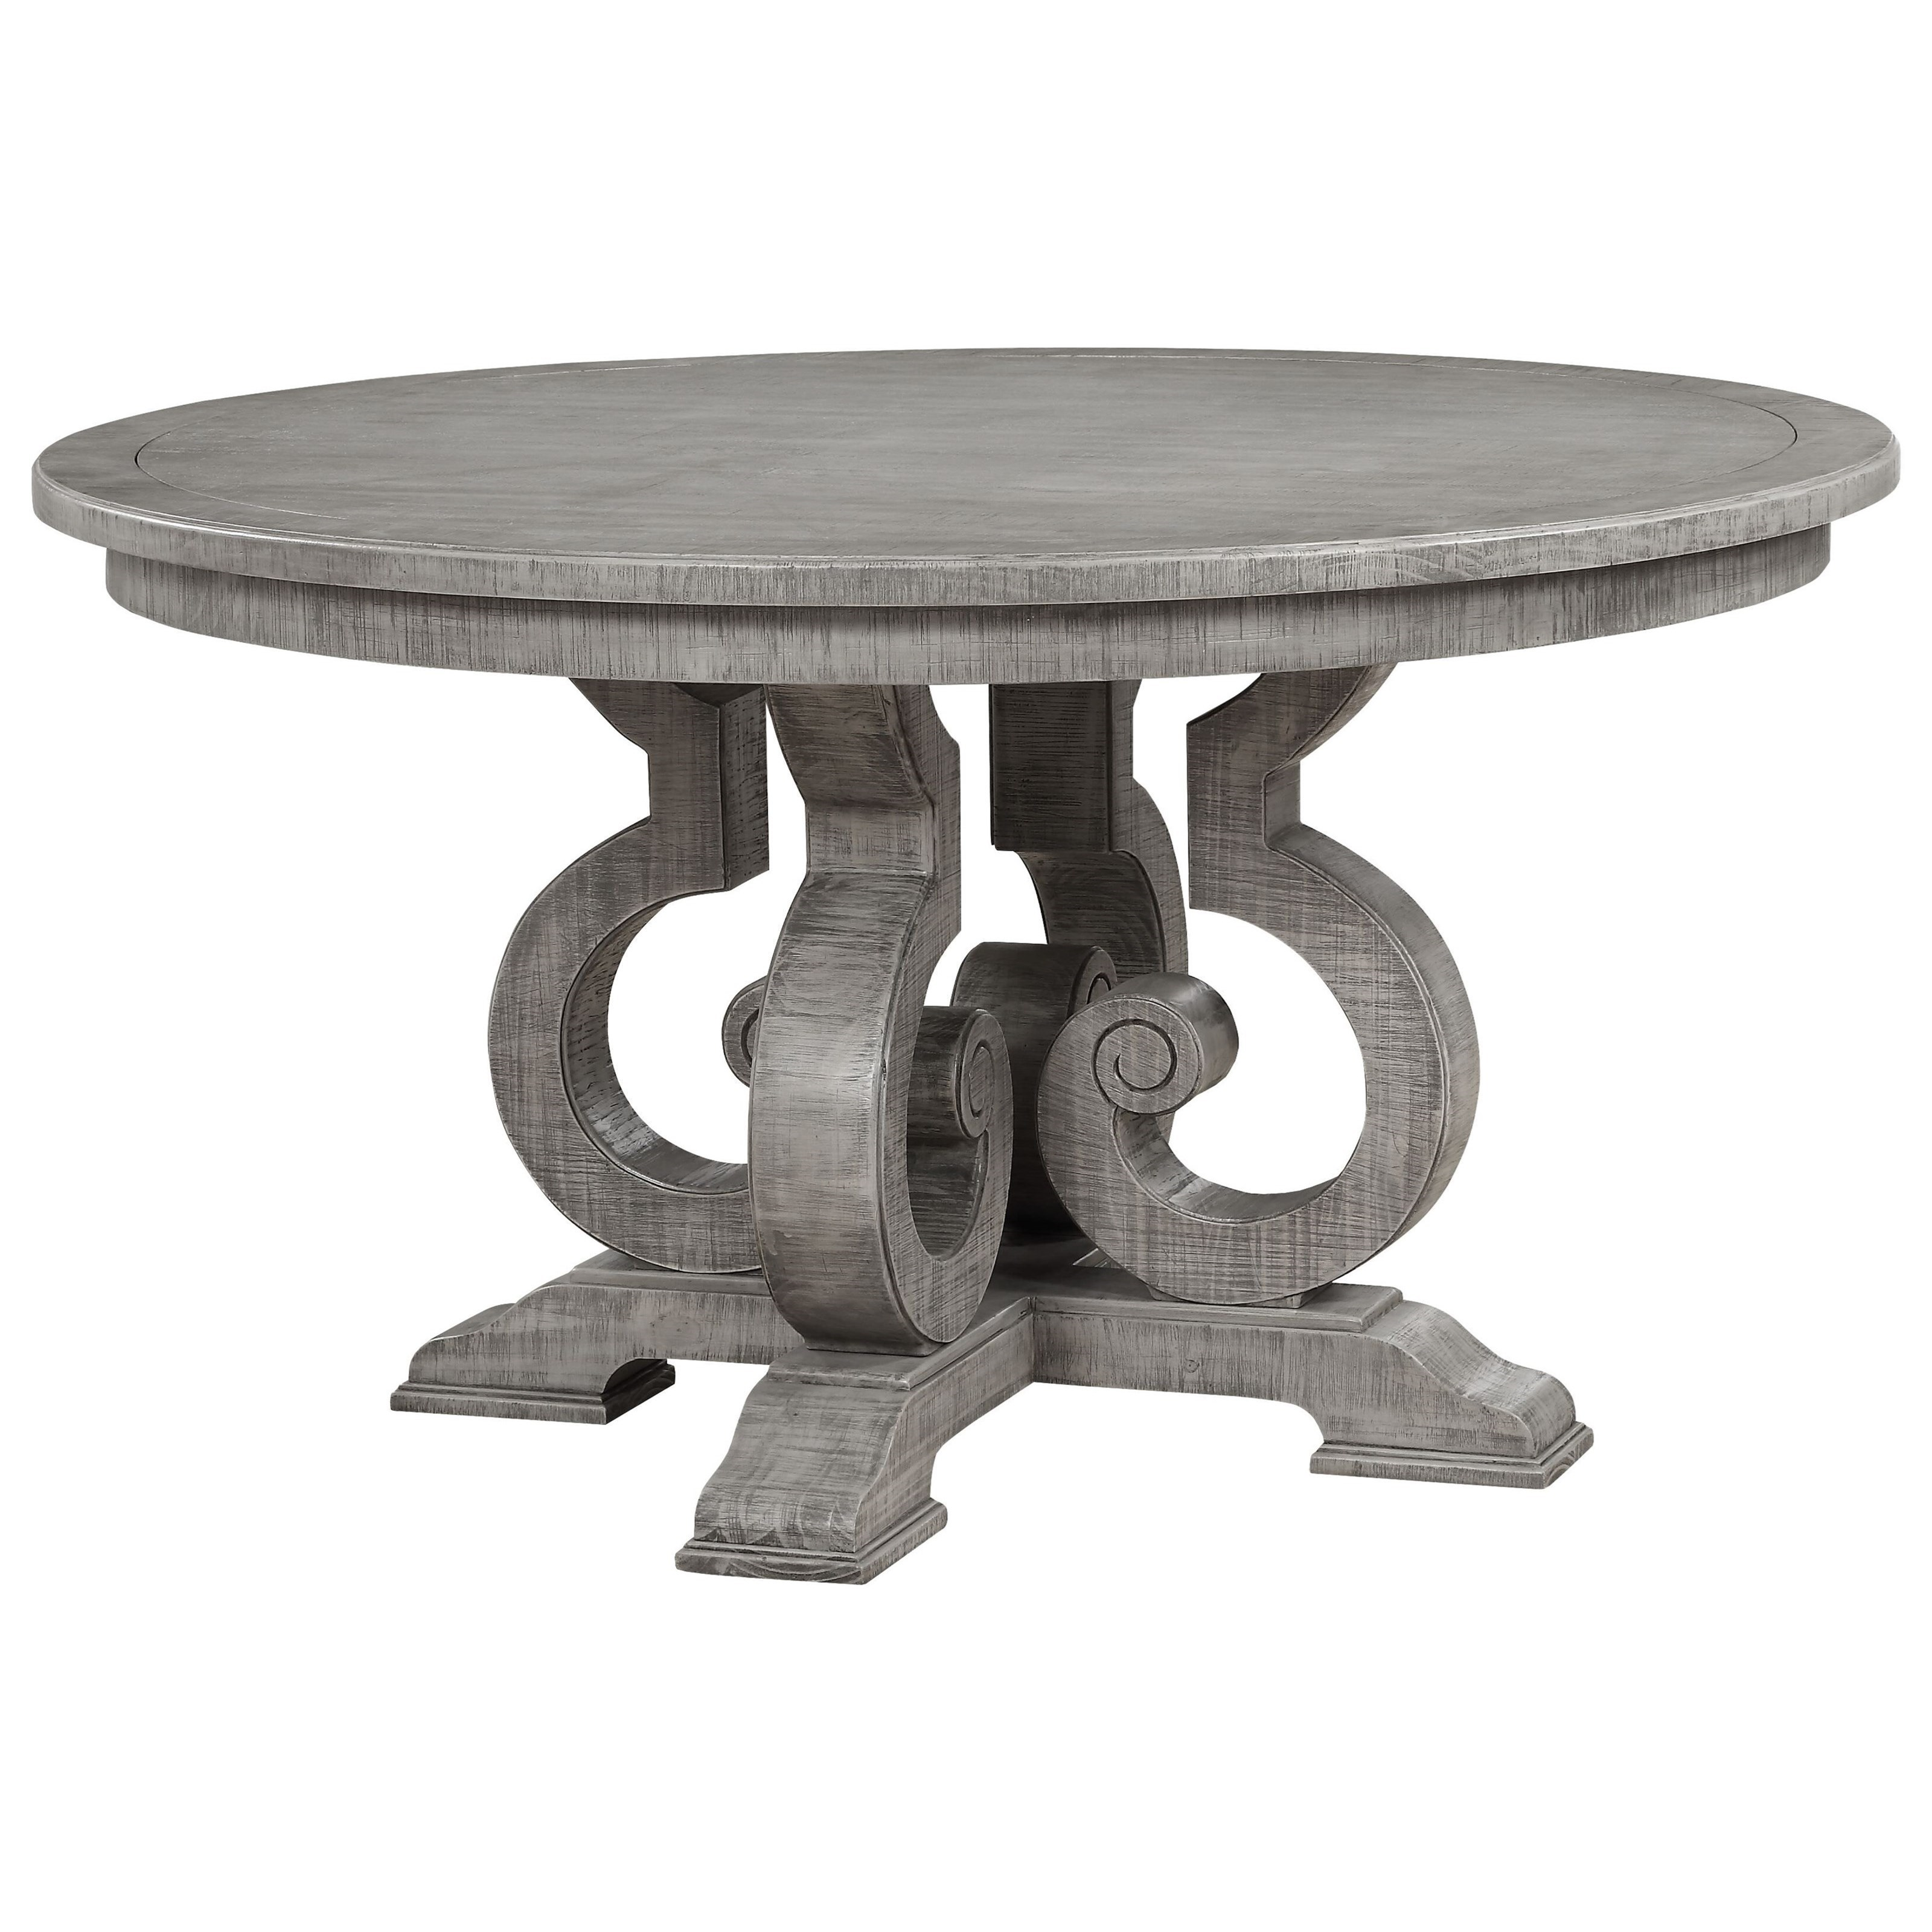 Artesia Dining Table (Round) by Acme Furniture at A1 Furniture & Mattress